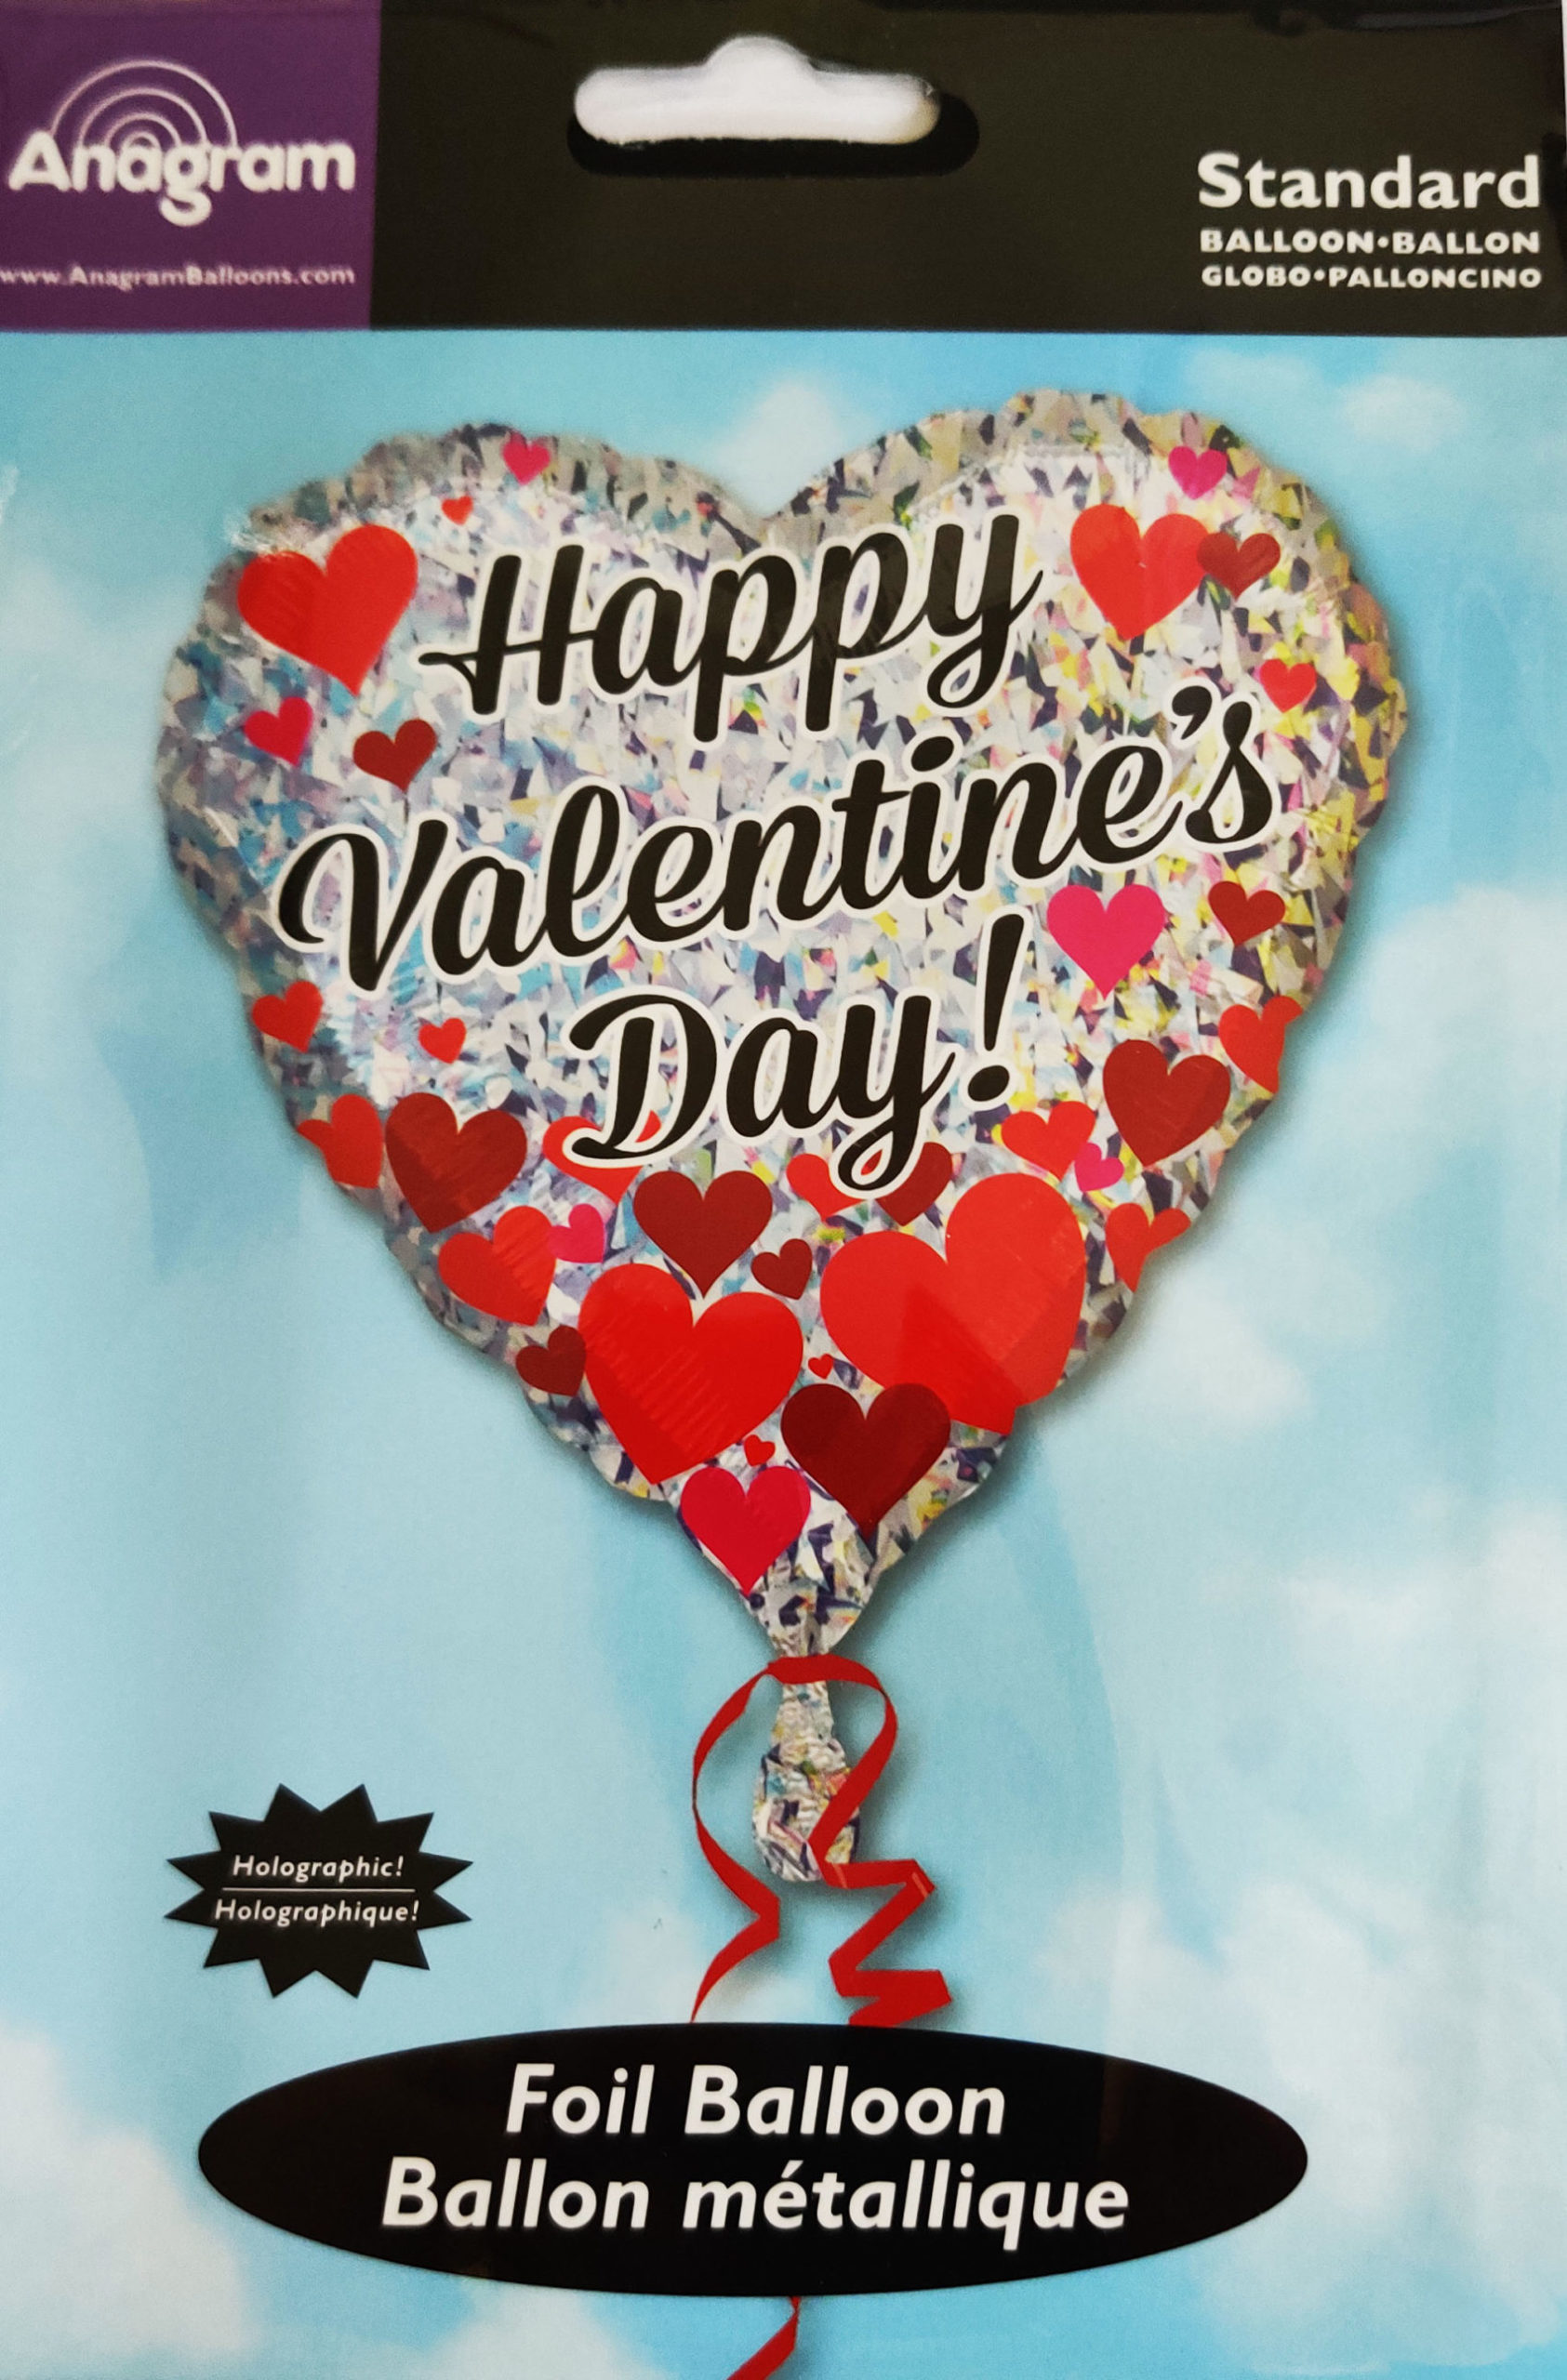 Happy Valentine's Day Heart Shaped 18inch Foil Balloon with Hearts 31794